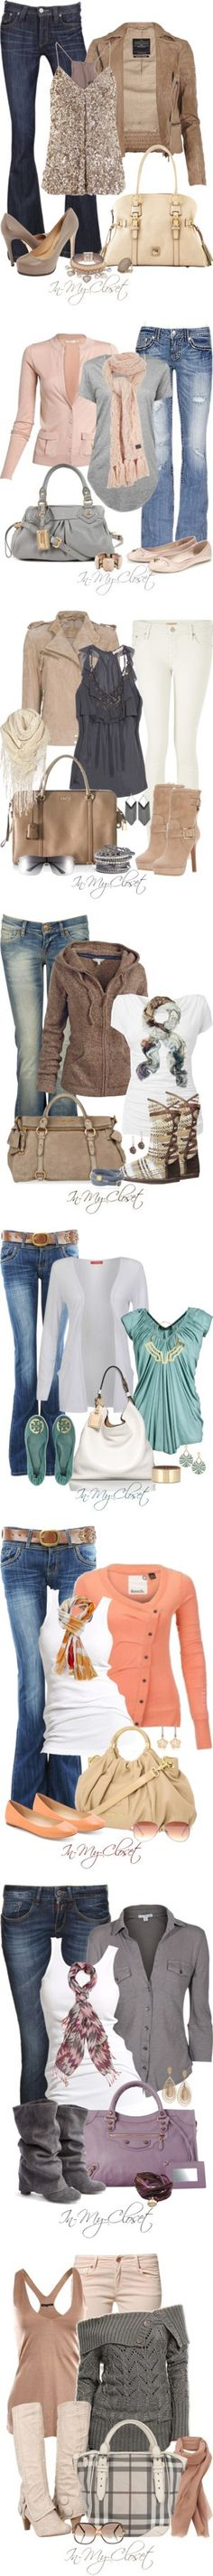 """My Favorite Things"" by in-my-closet on"